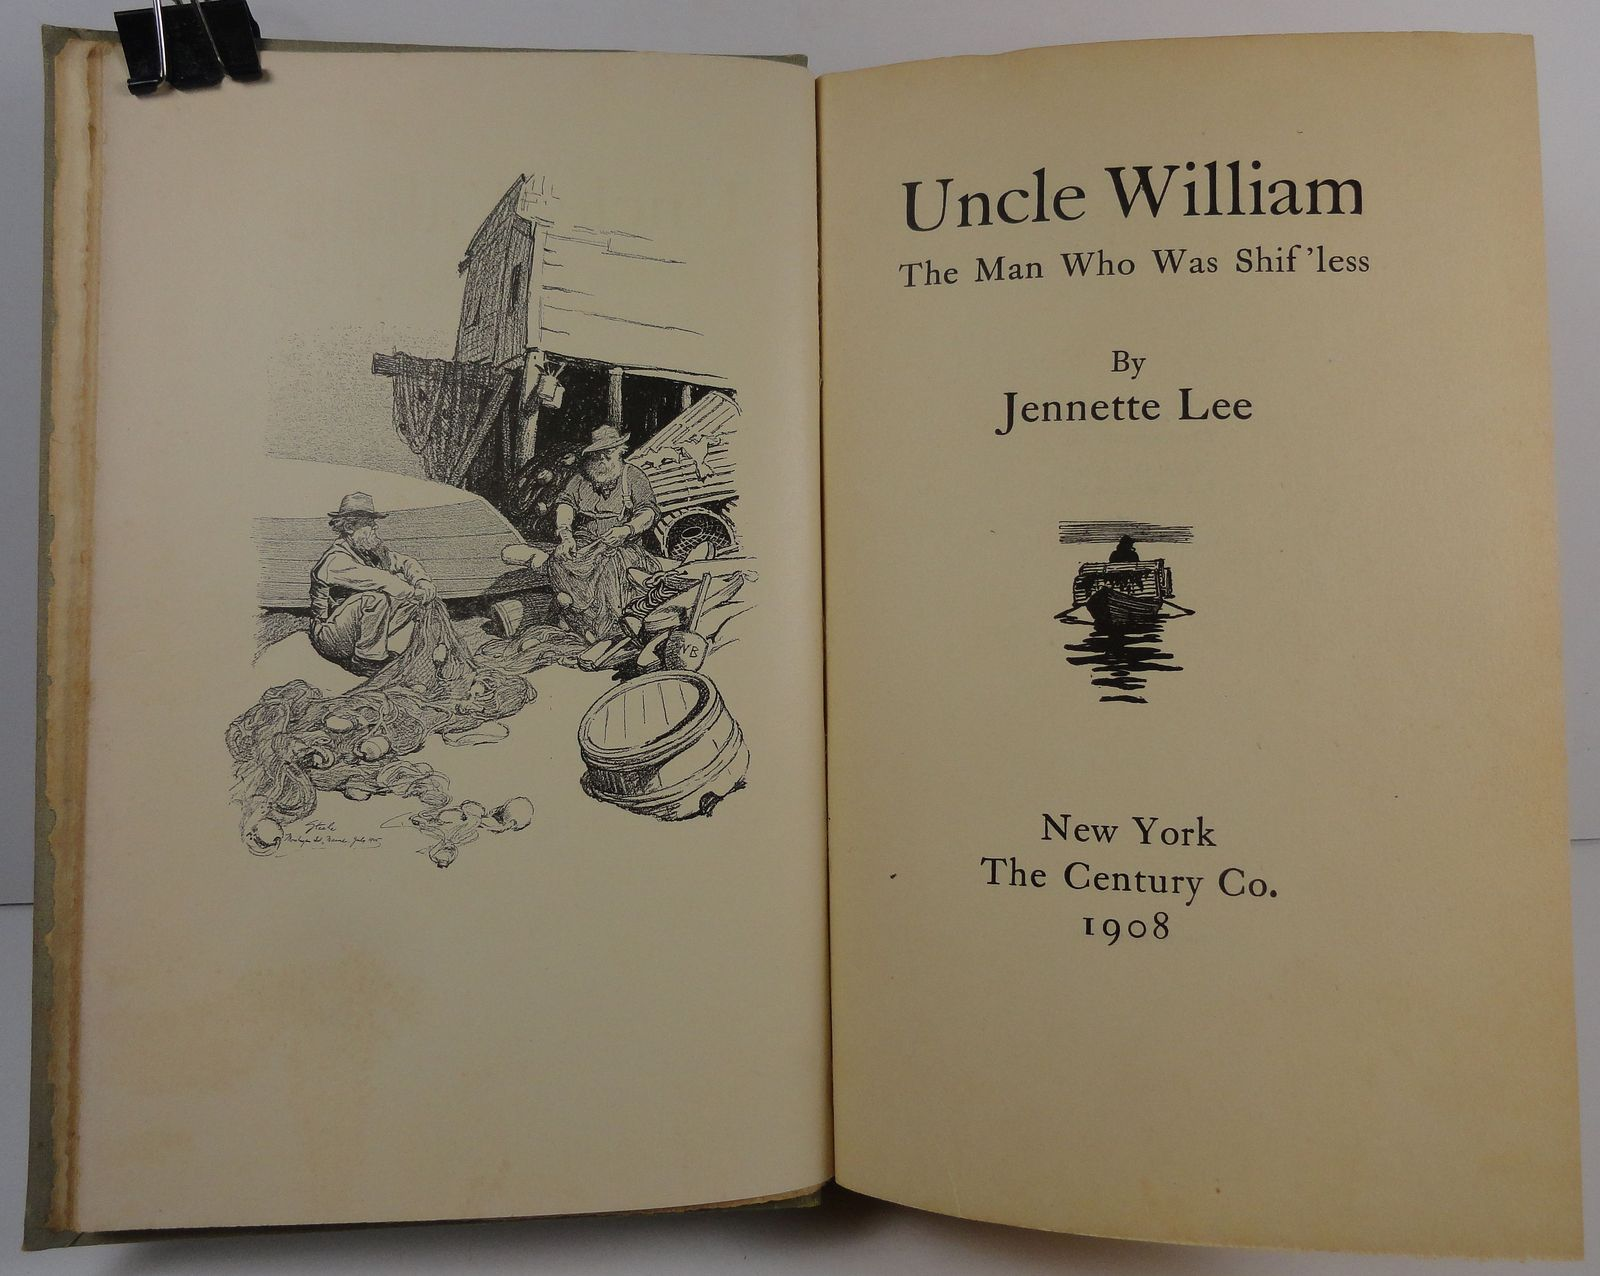 Uncle William The Man Who Was Shif'less by Jennette Lee 1908